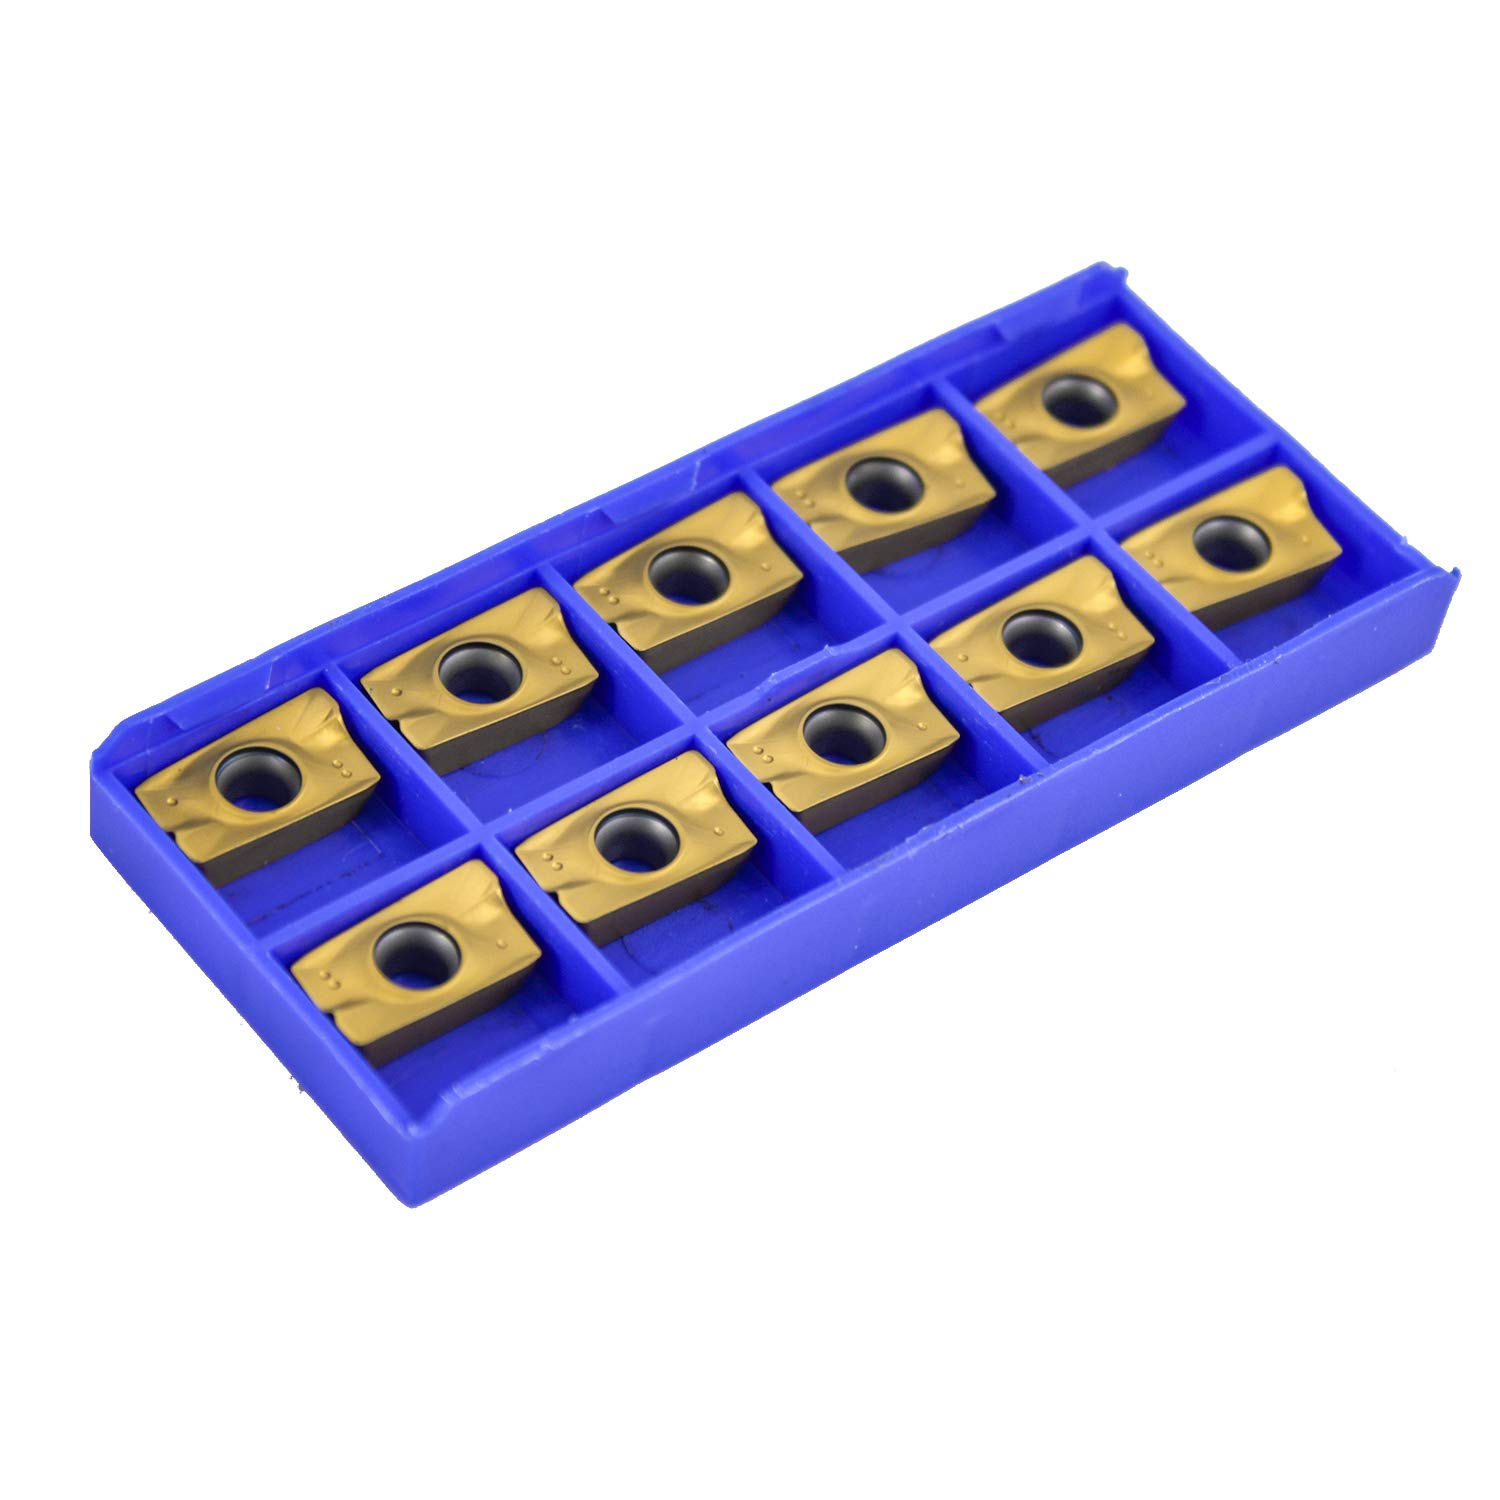 HFS Carbide Turning Inserts CNC Lathe Inserts for Lathe Turning Tool Holder Replacement Insert R